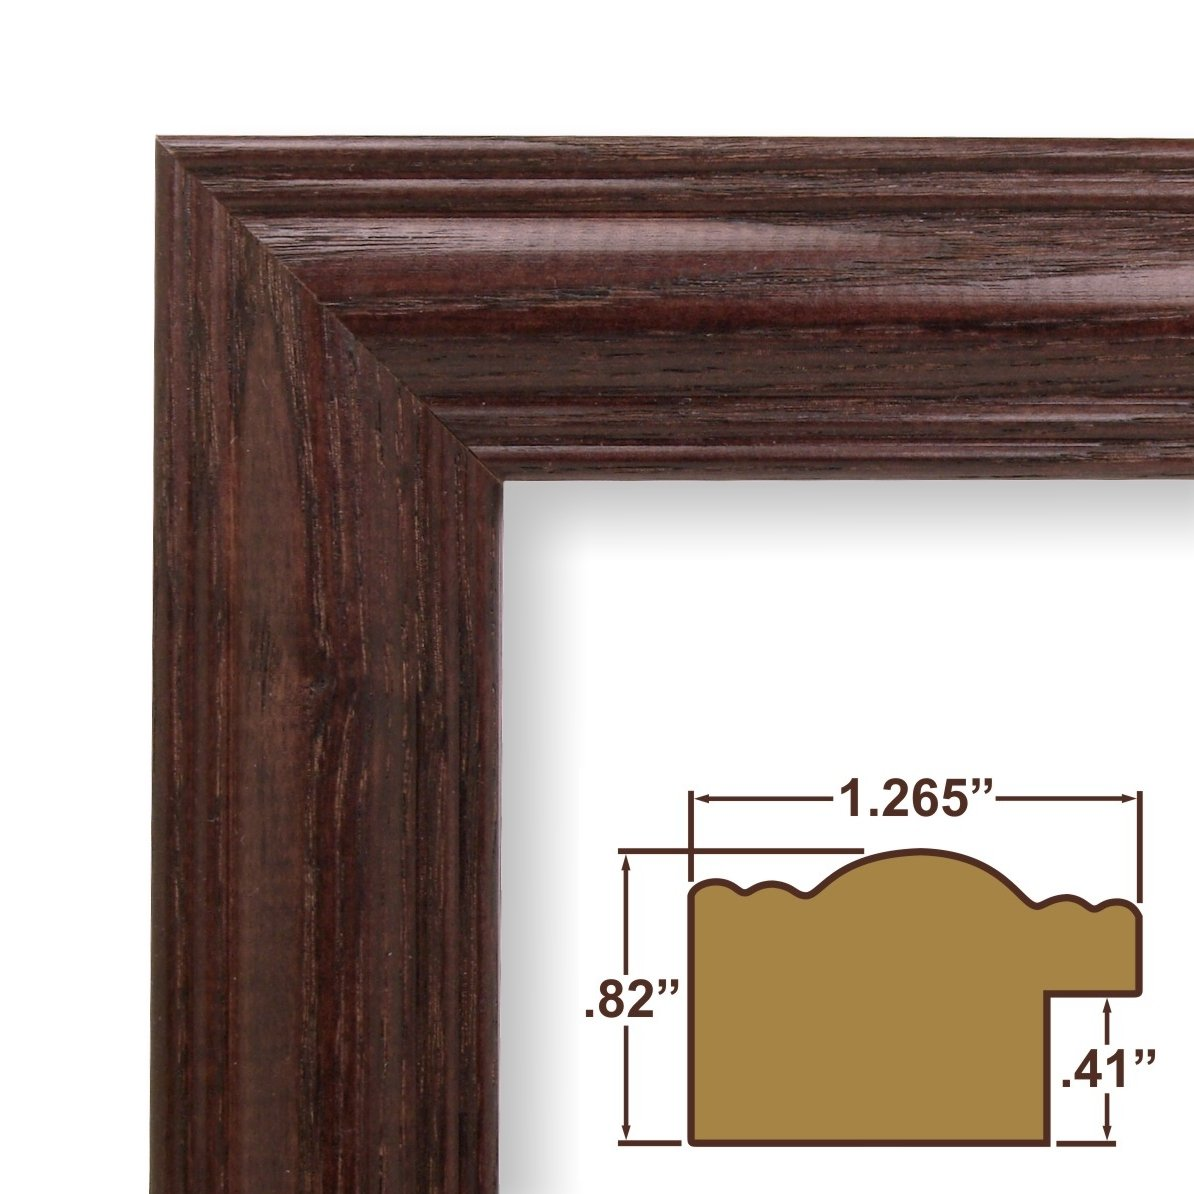 amazoncom 13x24 picture poster frame wood grain finish 1265 wide cherry red 440ch - Wood Poster Frames